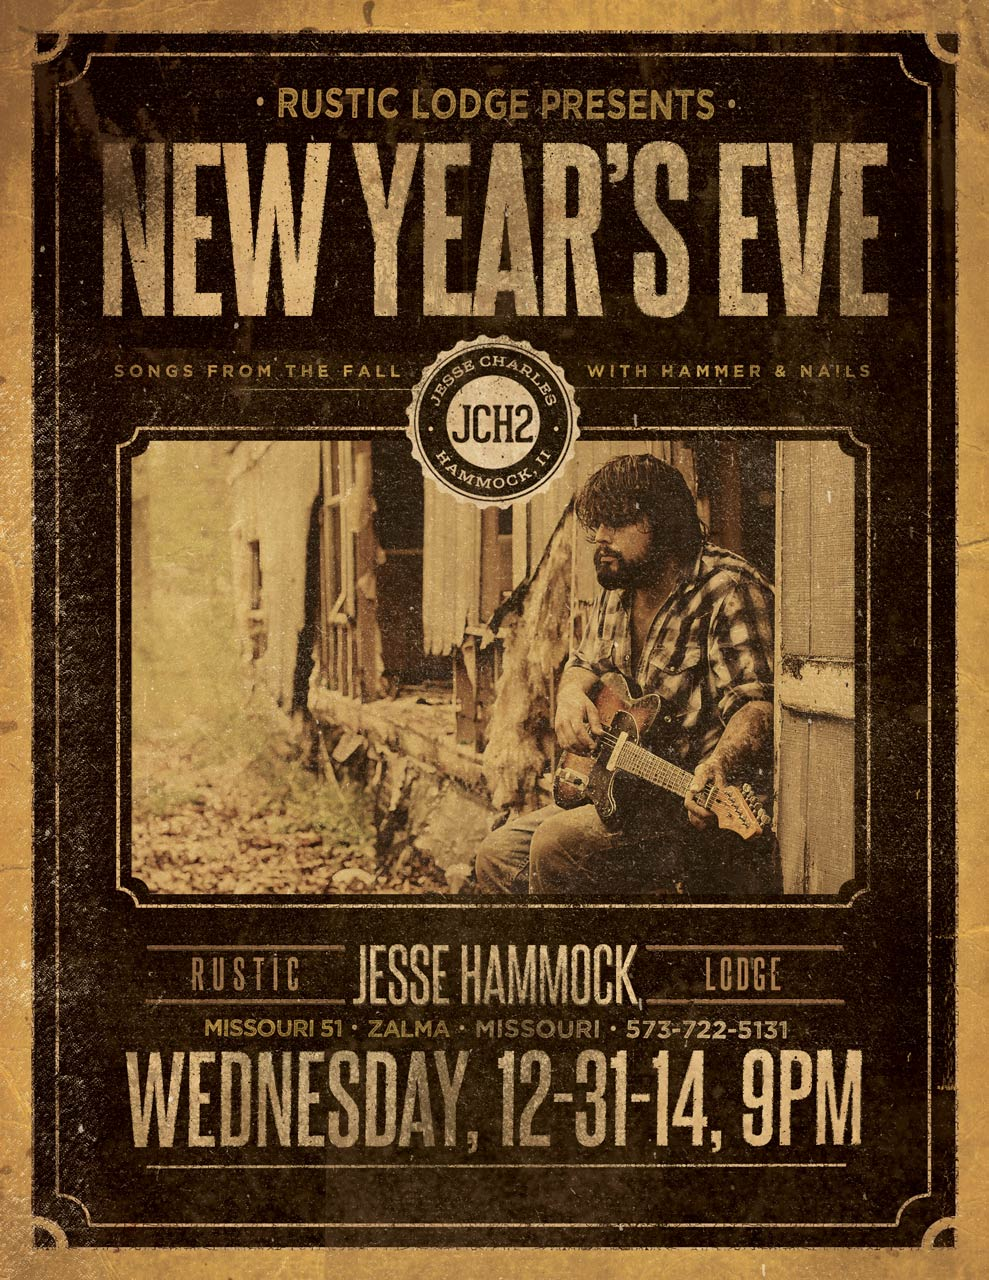 New Year's Eve with Jesse Charles Hammock at The Rustic Lodge